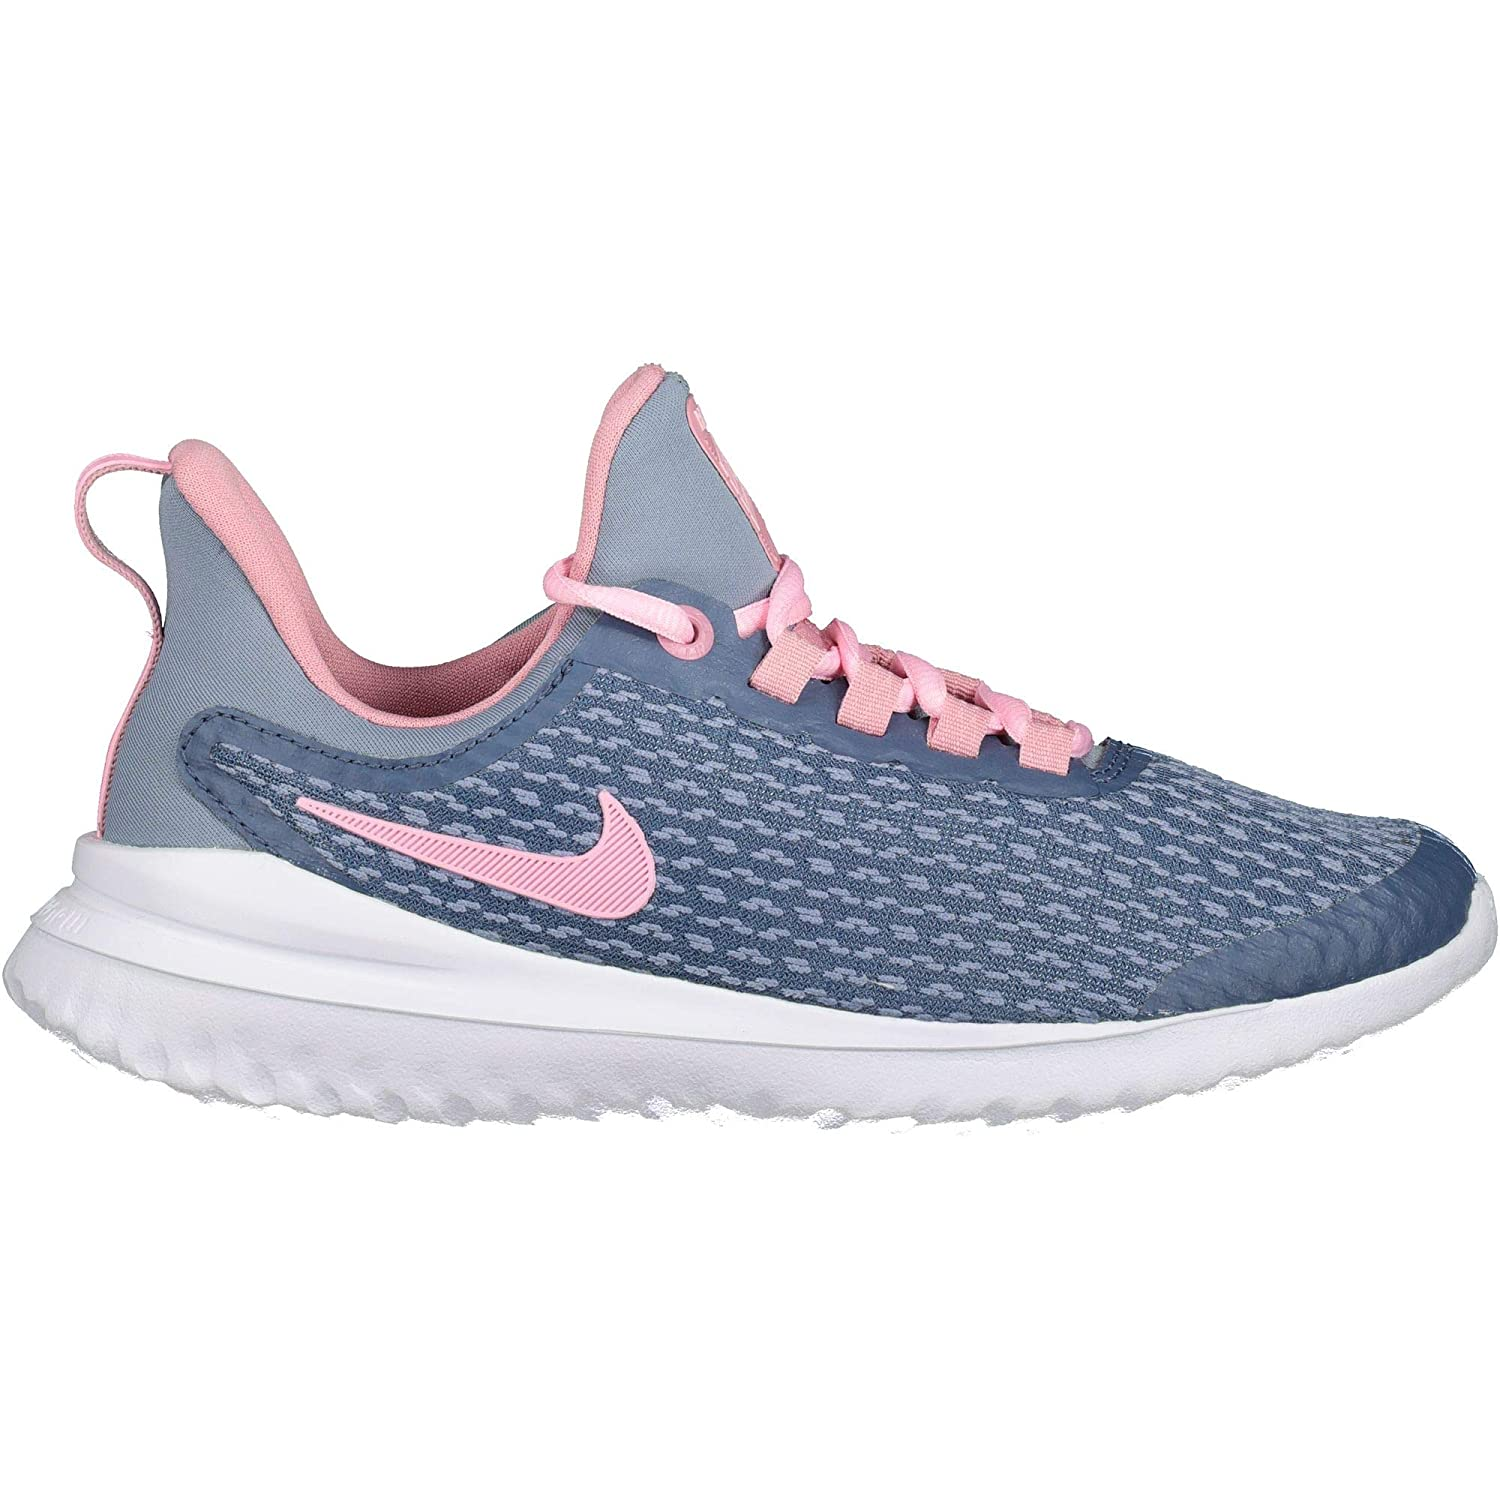 promo code 87c33 40c65 Nike Women s Renew Rival (Gs) Competition Running Shoes  Amazon.co.uk  Shoes    Bags